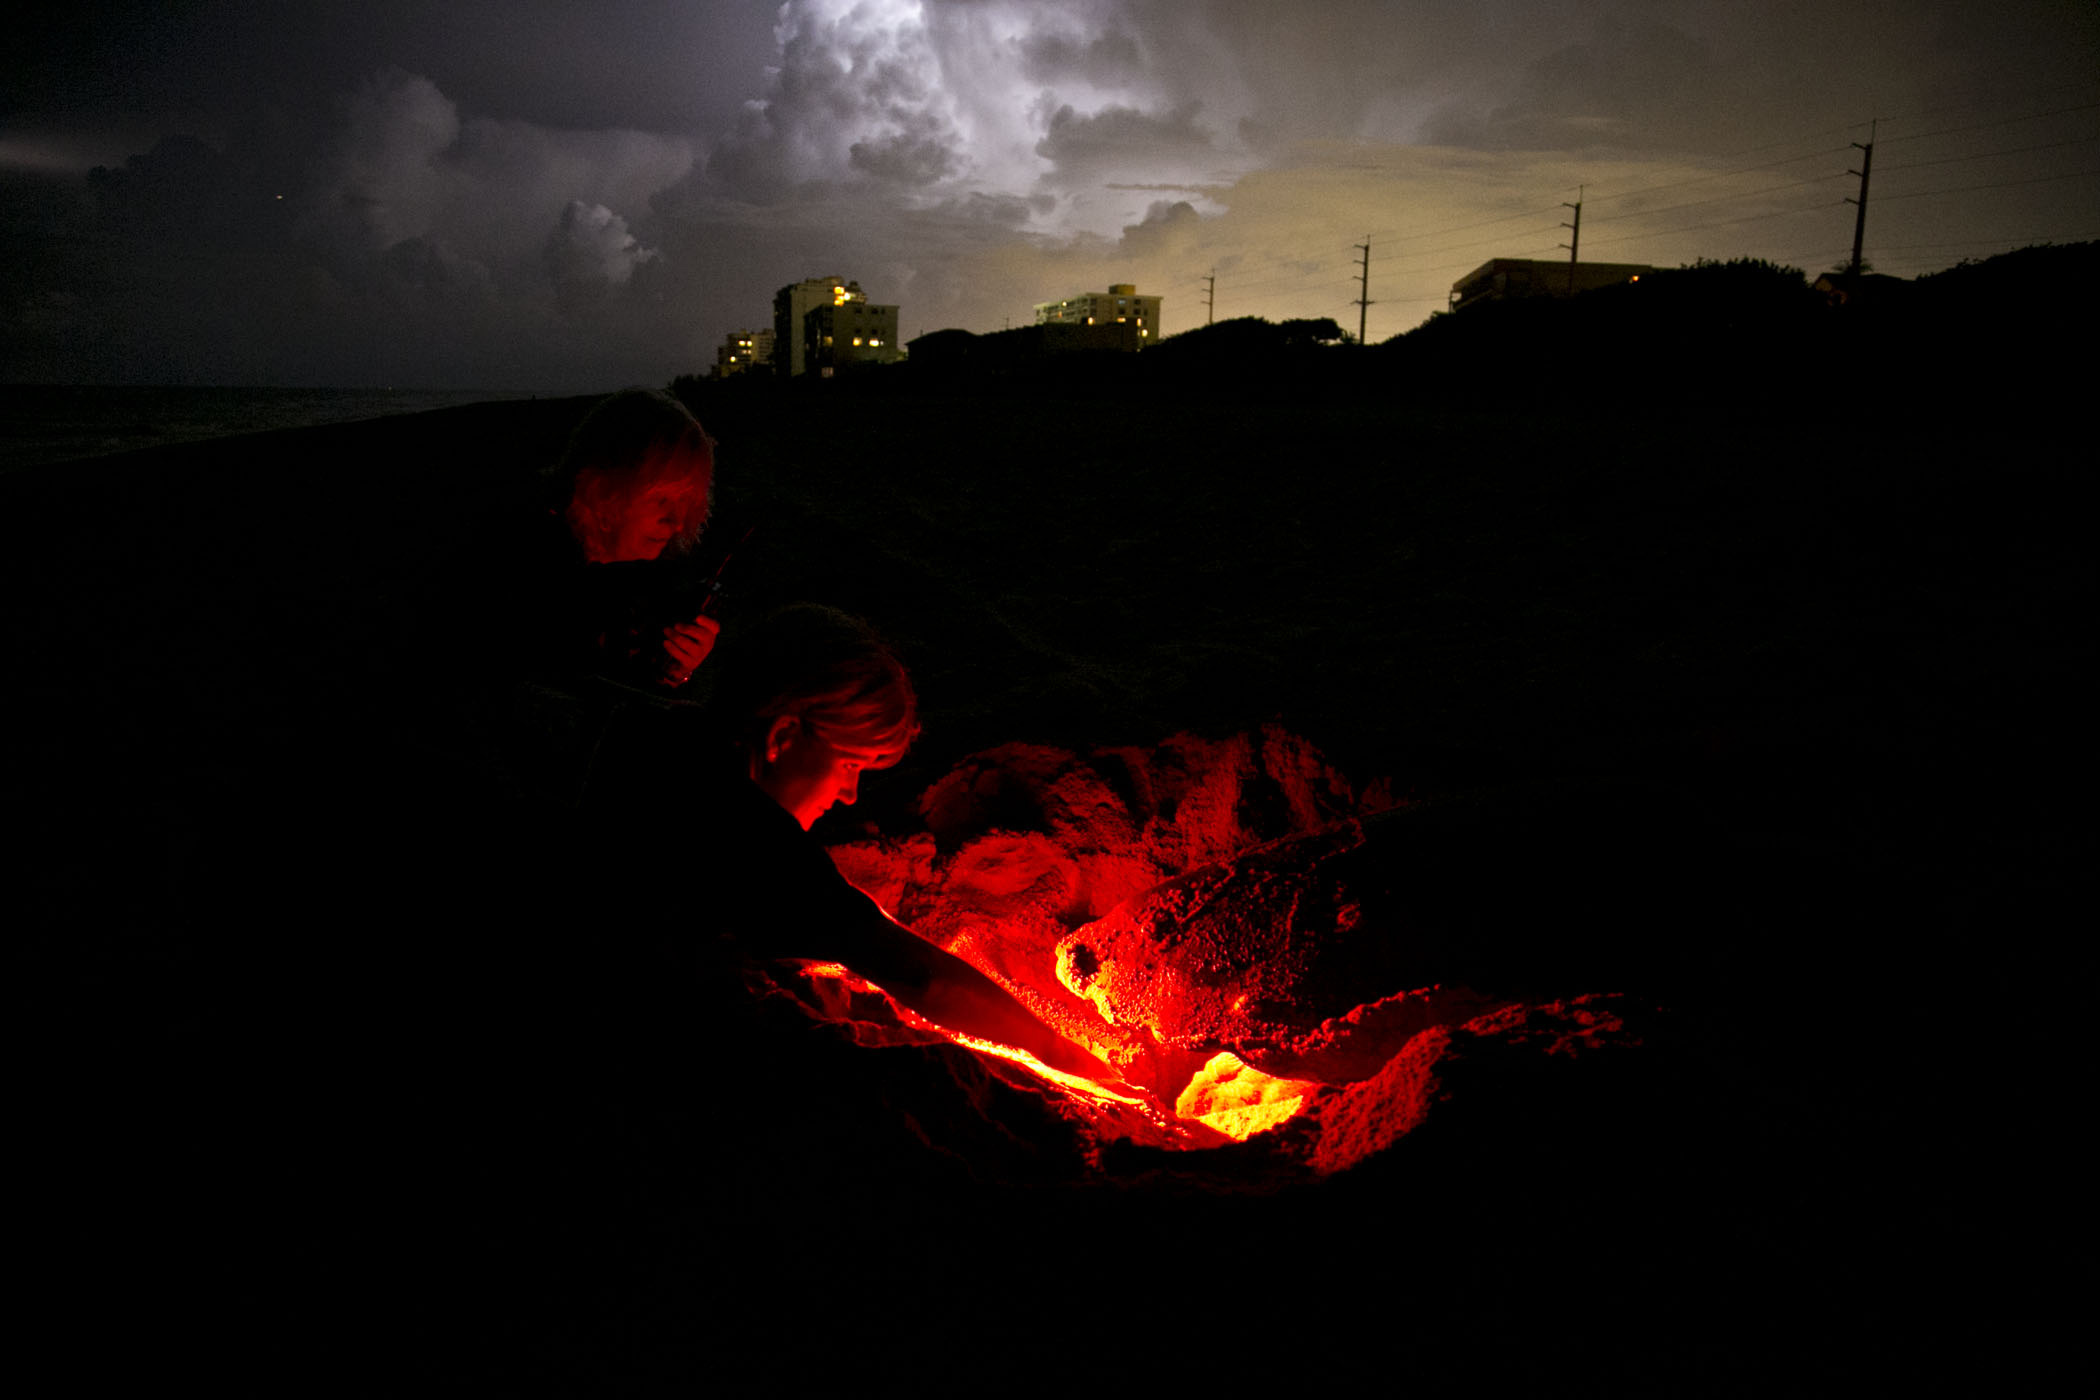 Staff examine nest with red light while sea turtle lays eggs in dark